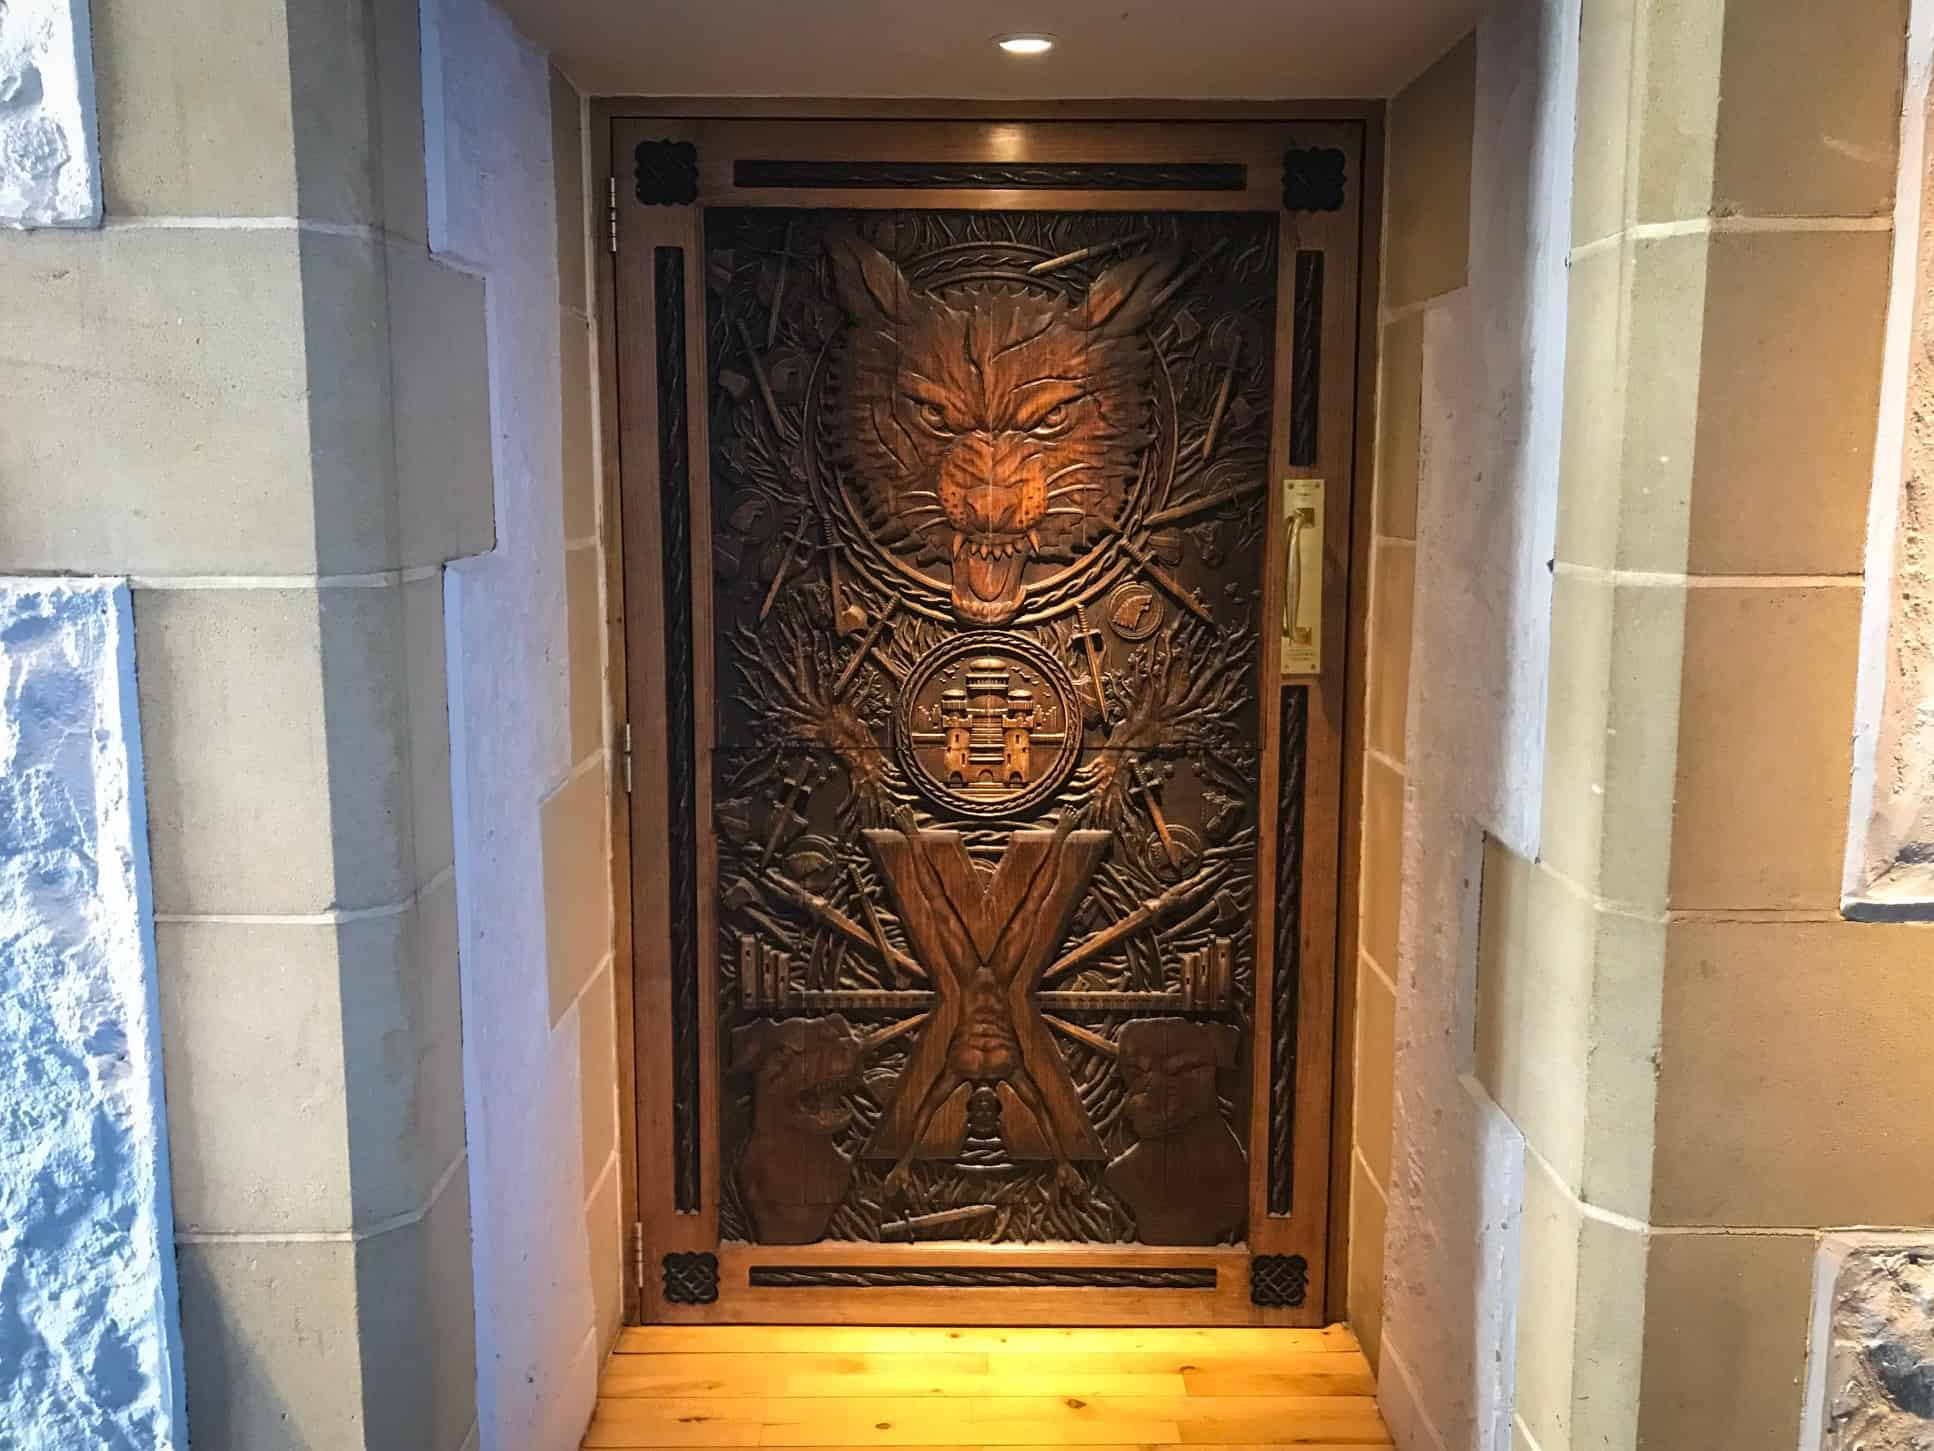 How To Visit The Game Of Thrones Doors In Ireland & How To Visit The Game Of Thrones Doors In Ireland - Follow Me Away